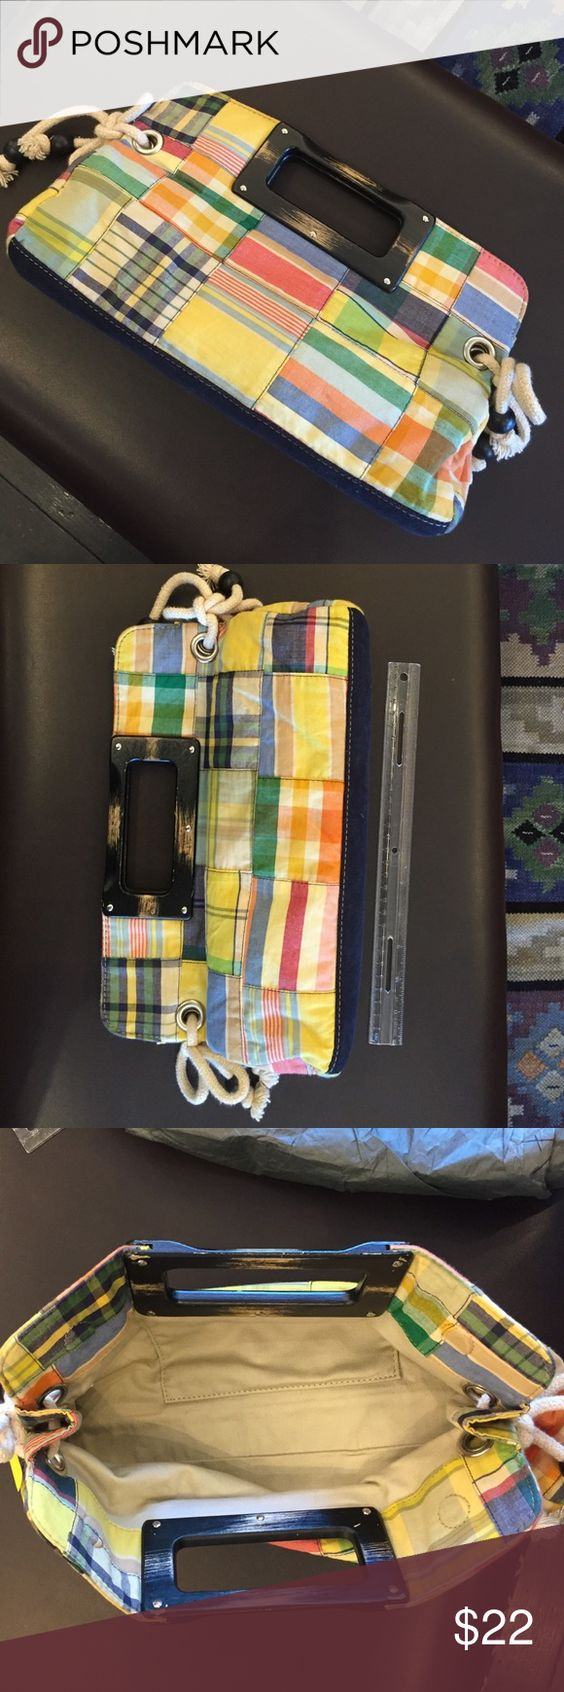 Plaid patchwork clutch Magnetic closure.In excellent condition. J. Crew Bags Clutches & Wristlets